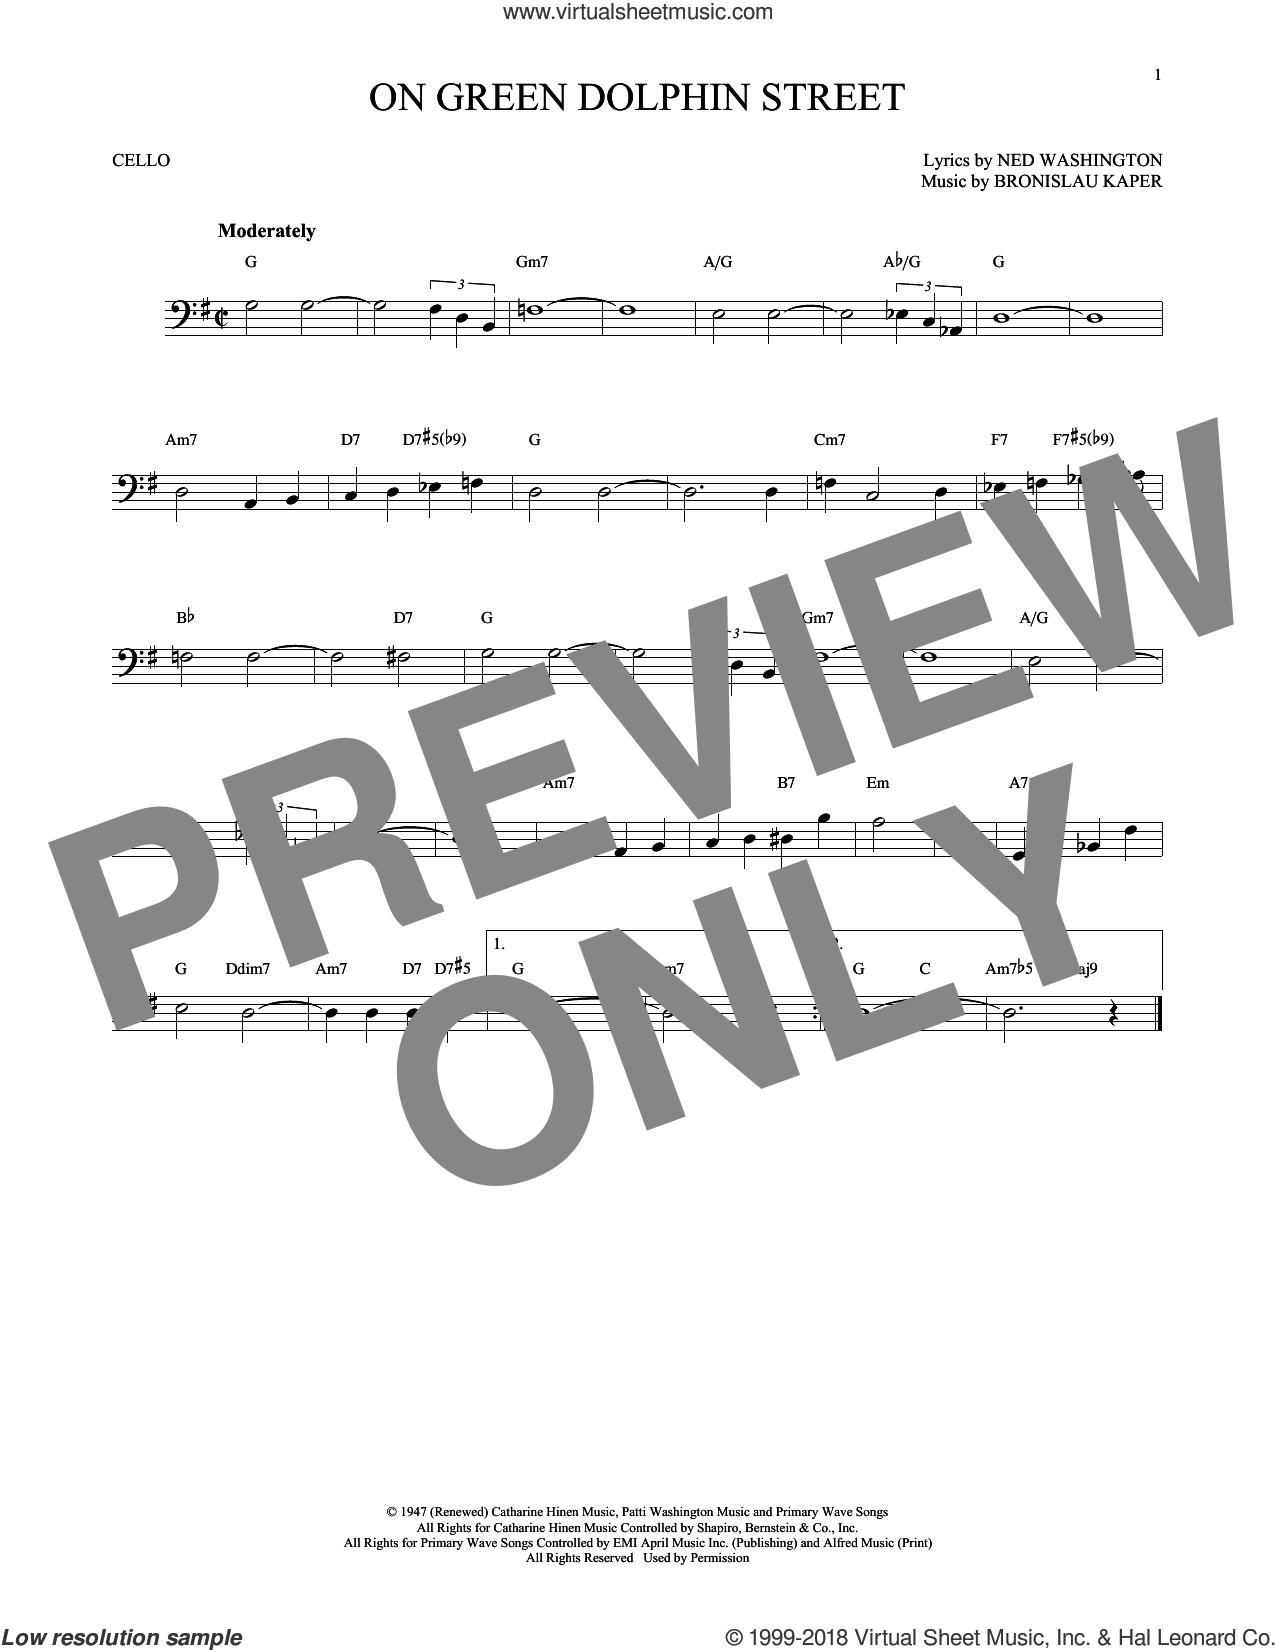 On Green Dolphin Street sheet music for cello solo by Ned Washington and Bronislau Kaper, intermediate skill level